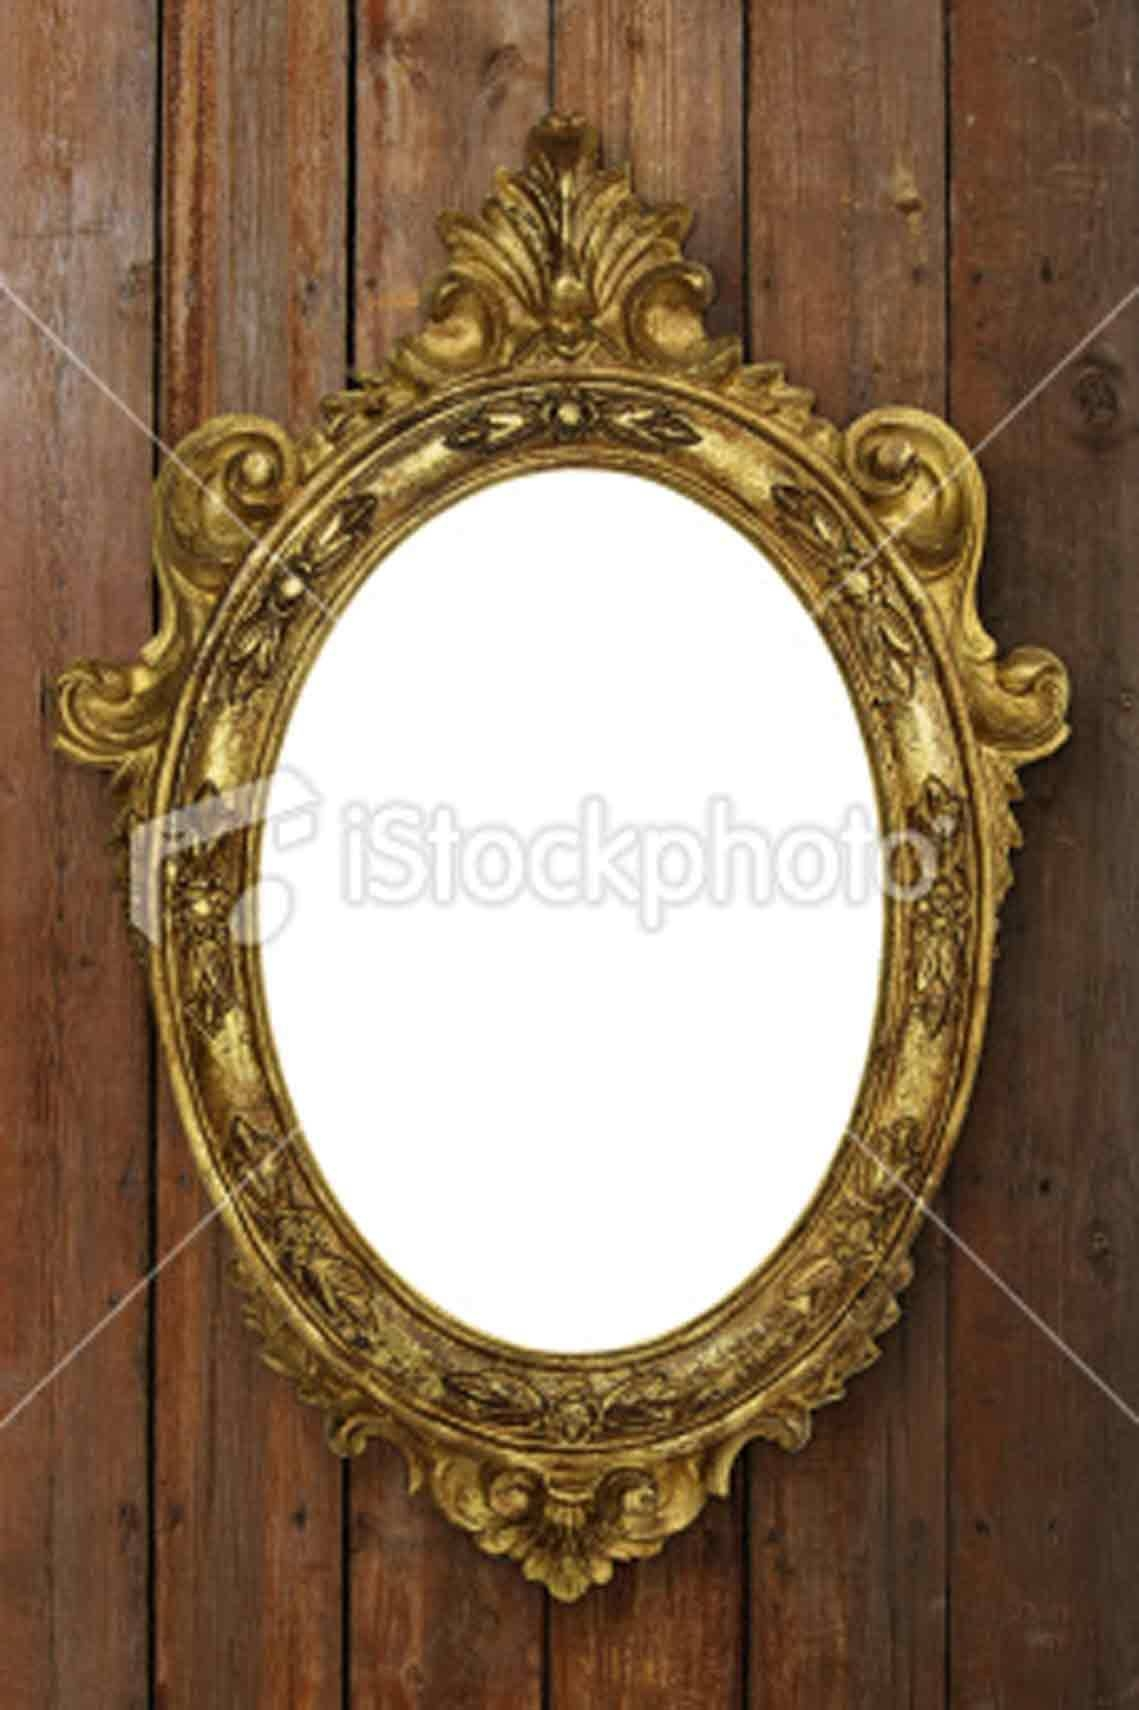 Home Decor: Antique Mirror Frames | The Best Home Decor Within Antique Mirrors (View 25 of 25)